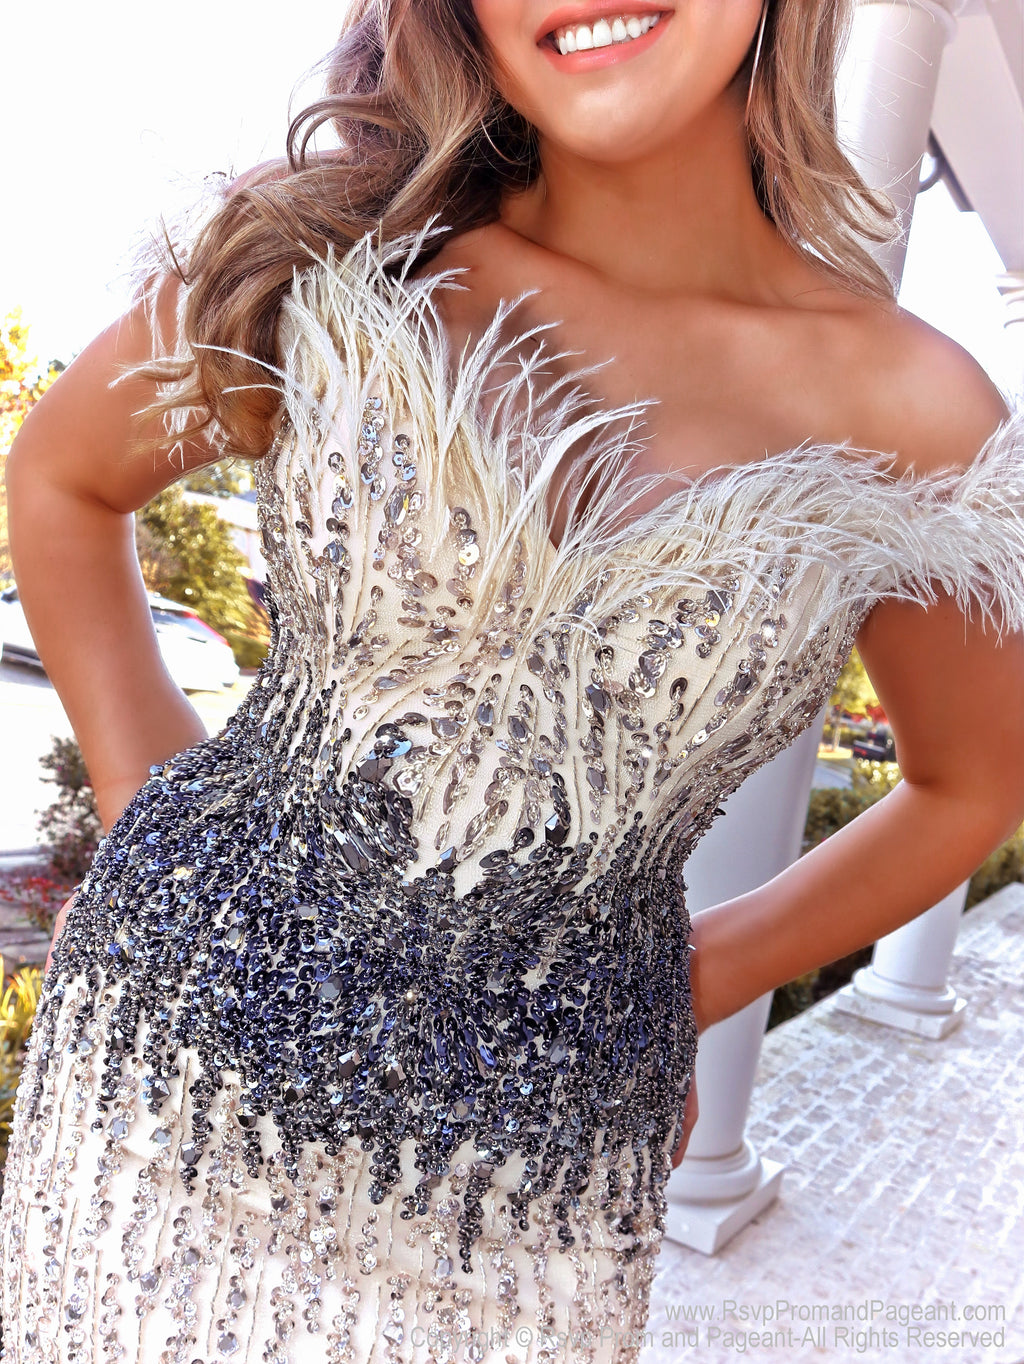 Closeup of Model in this Nude/Gunmetal mermaid gown featuring feathered fringe around the shoulders and feathers on the skirt! This off the shoulder look with stunning beading and layered colors is the perfect dress to wow the crowd! And it's at Rsvp Prom and Pageant, your source for the HOTTEST Prom and Pageant Dresses and exclusive evening gowns and located in Atlanta, Georgia!